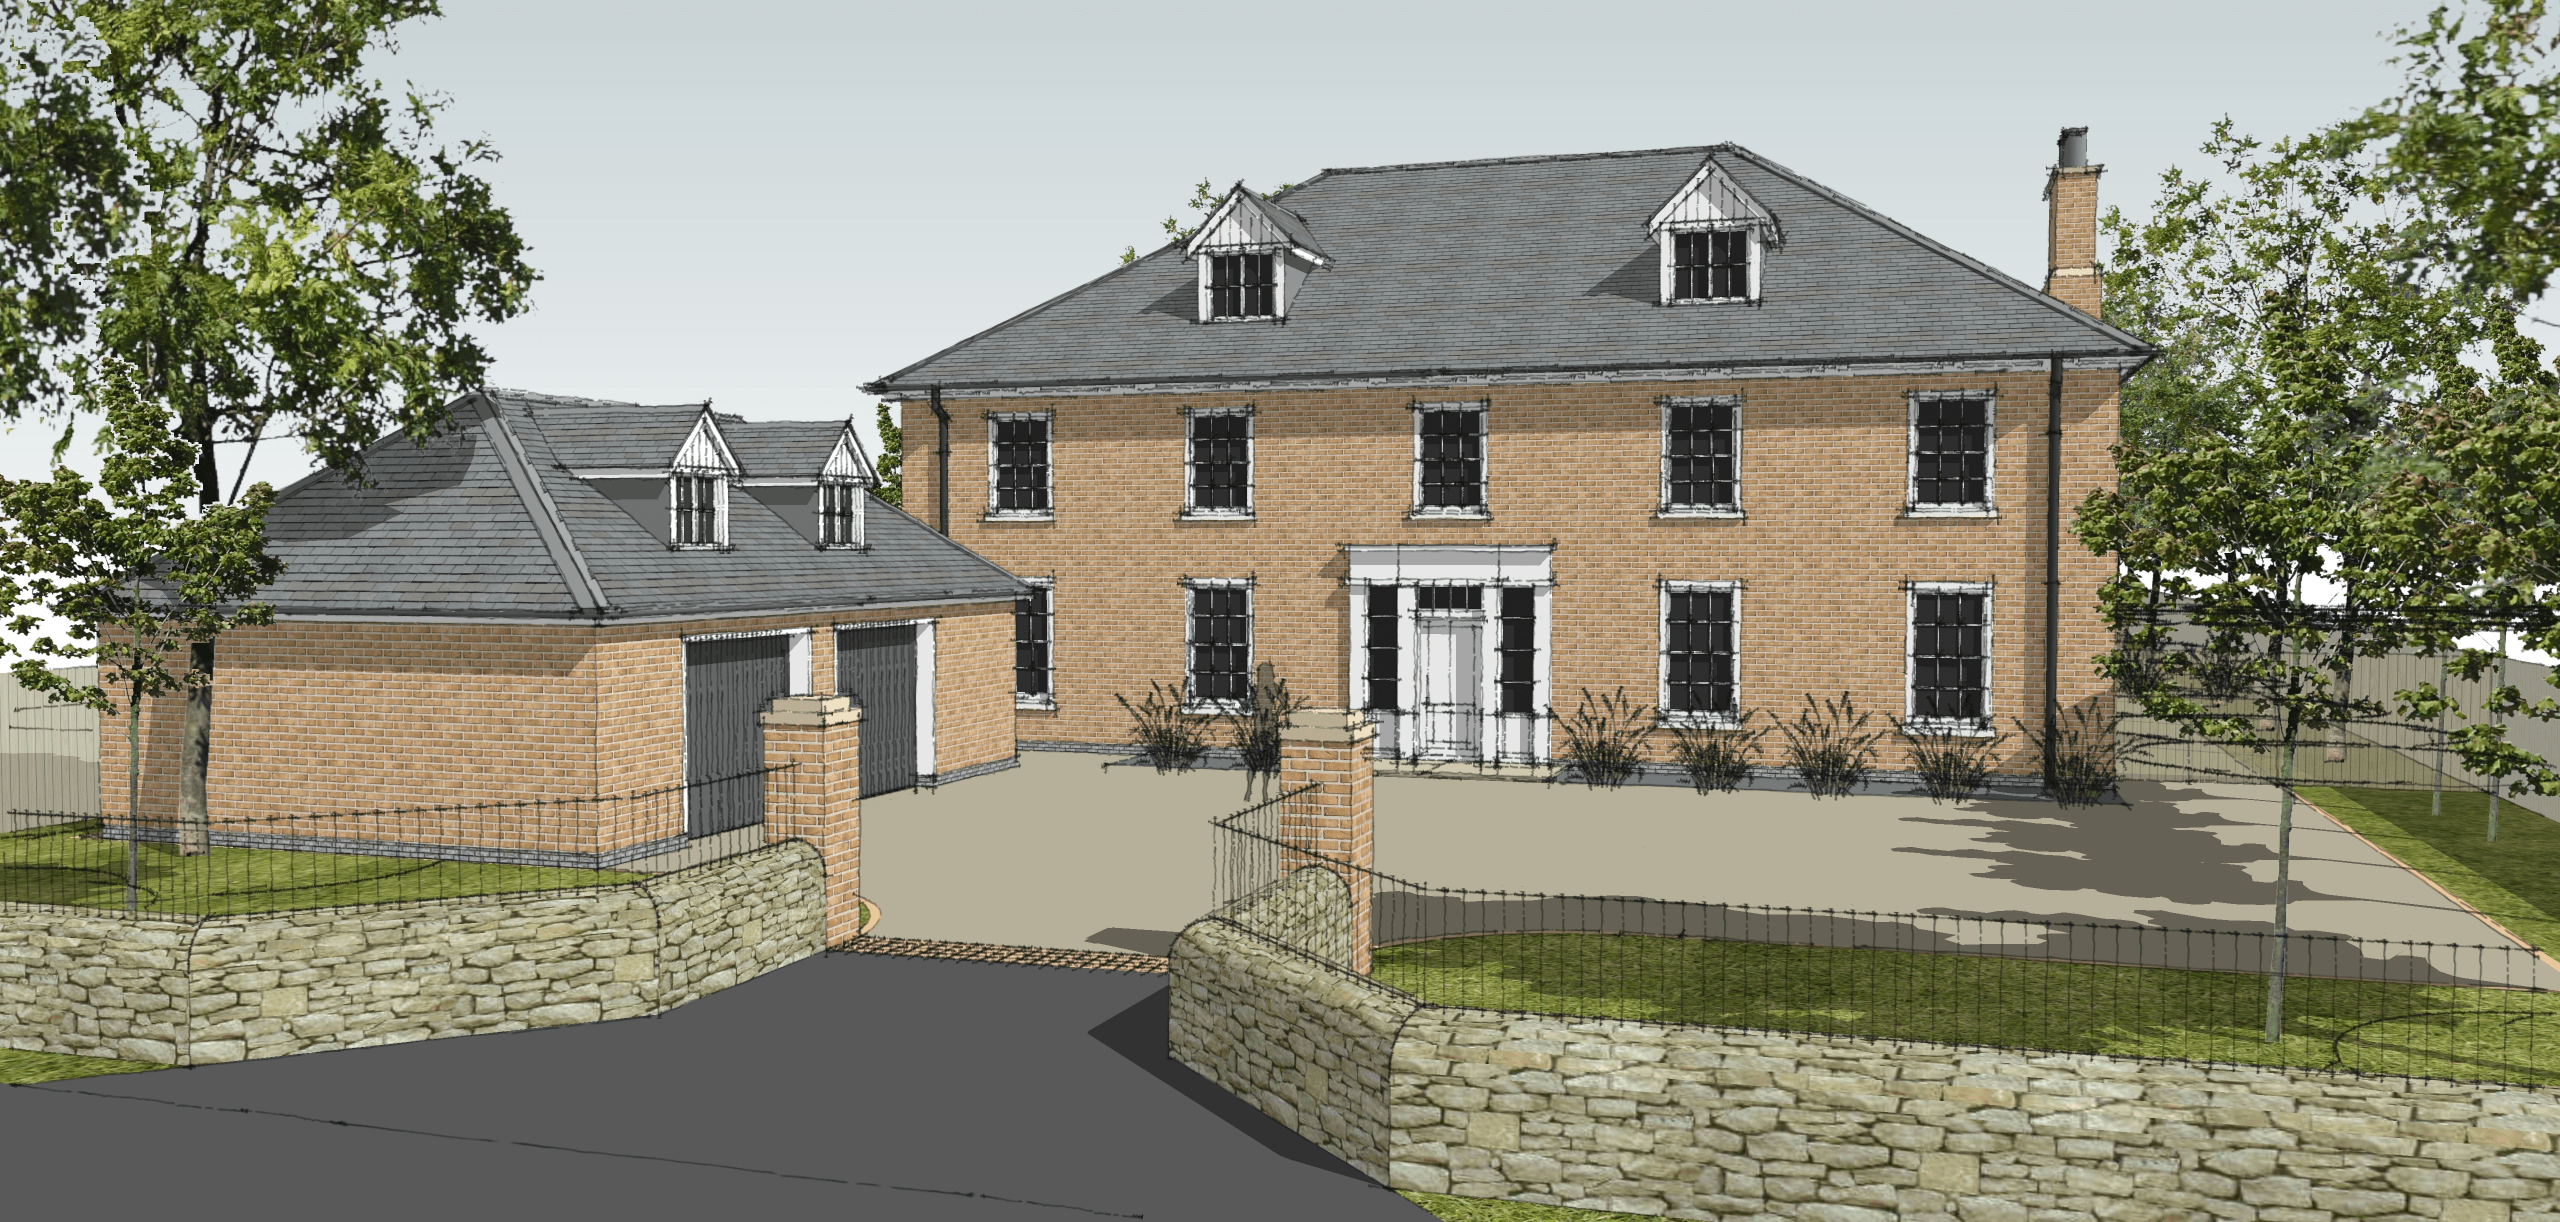 New build georgian inspired house leaf architecture for Garden design georgian house